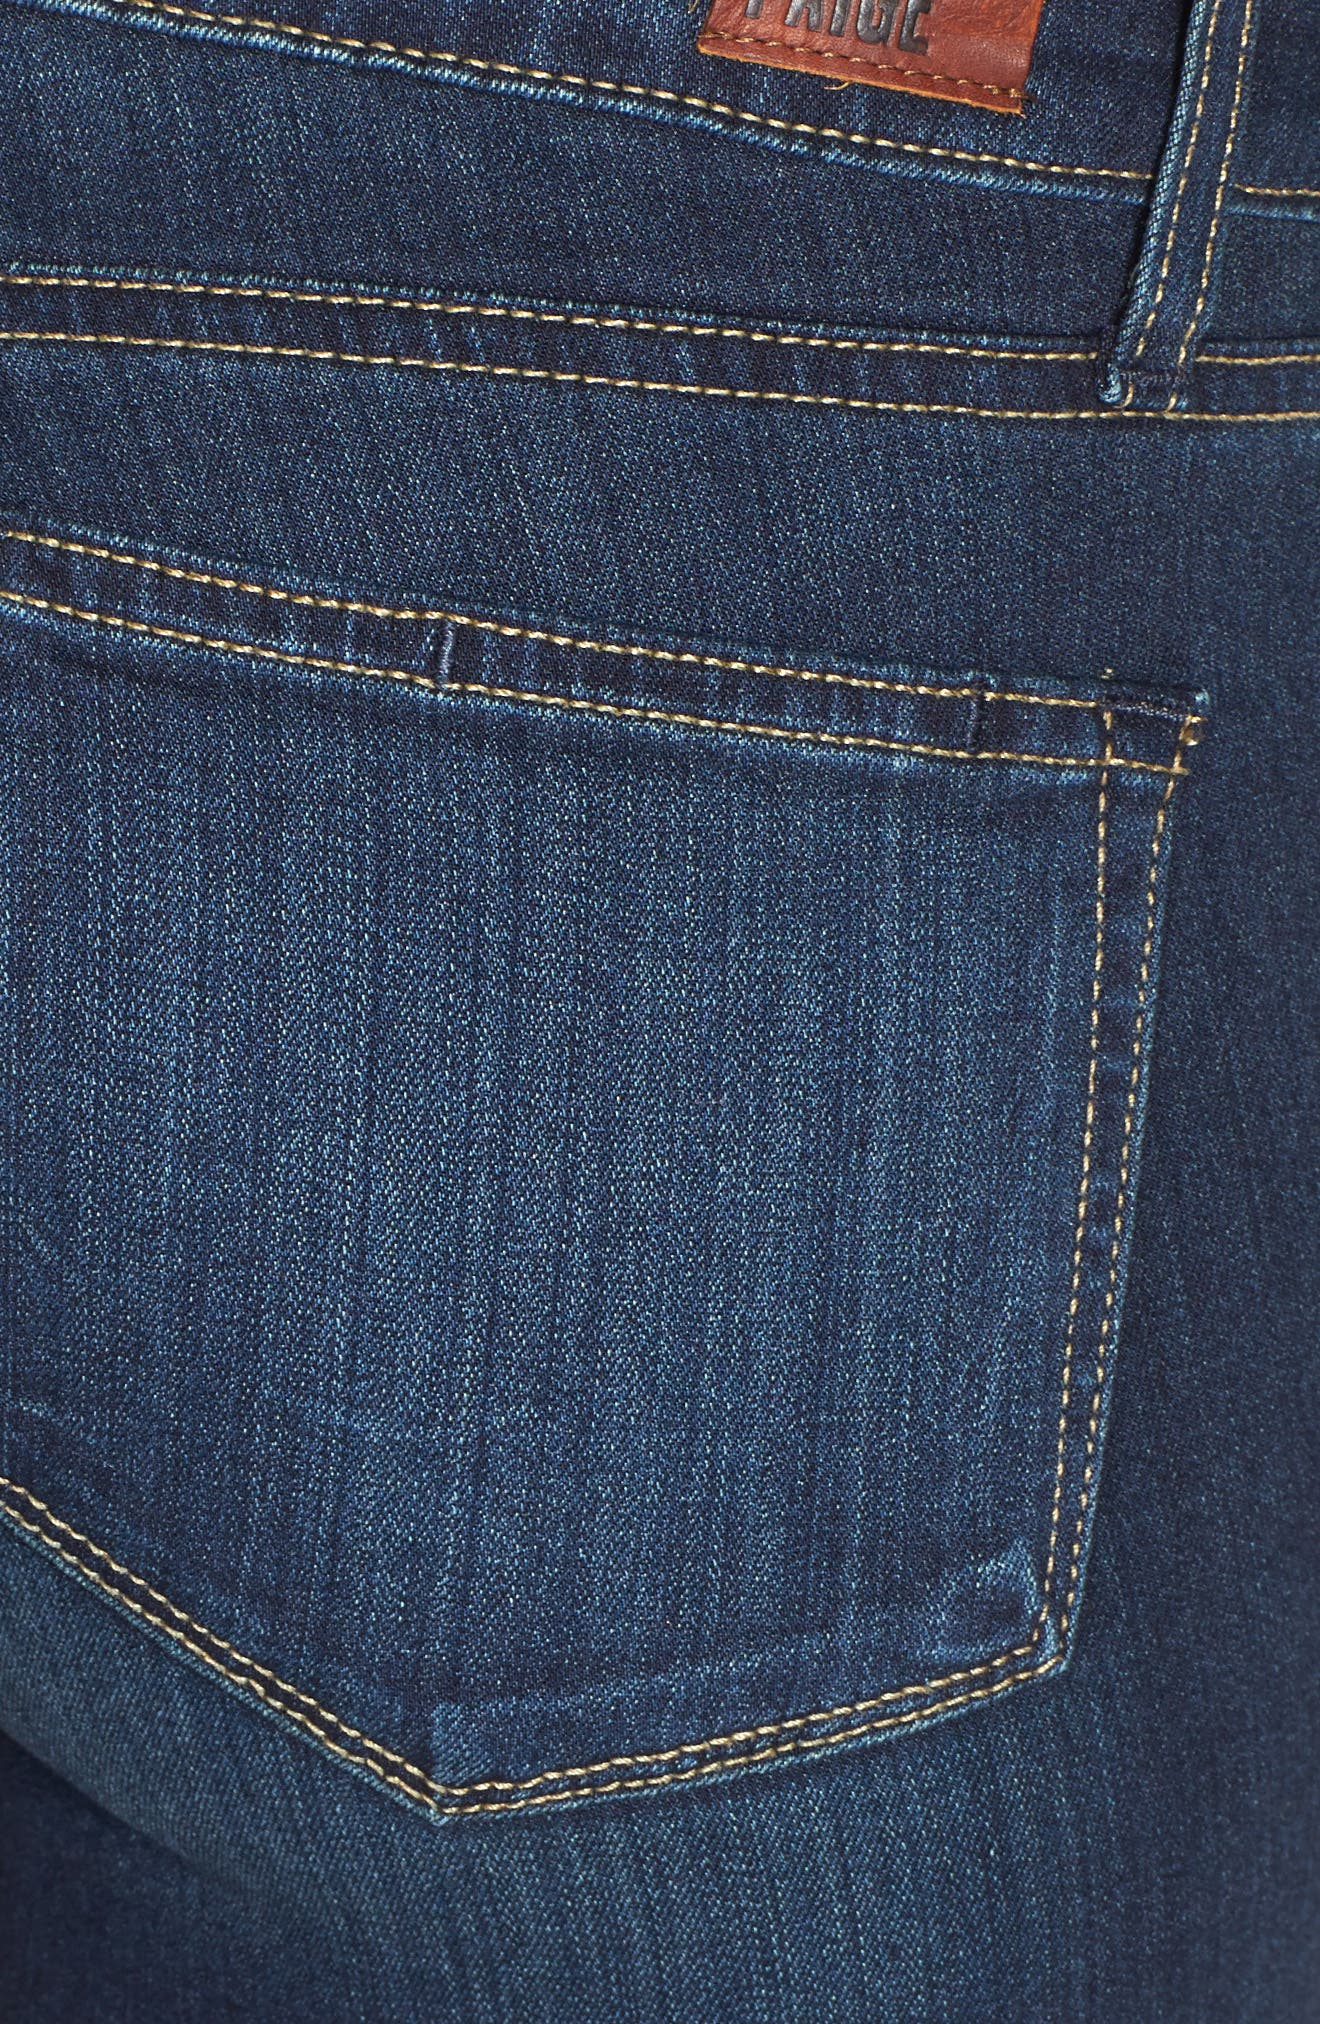 Transcend - Verdugo Ankle Skinny Jeans,                             Alternate thumbnail 7, color,                             NOTTINGHAM